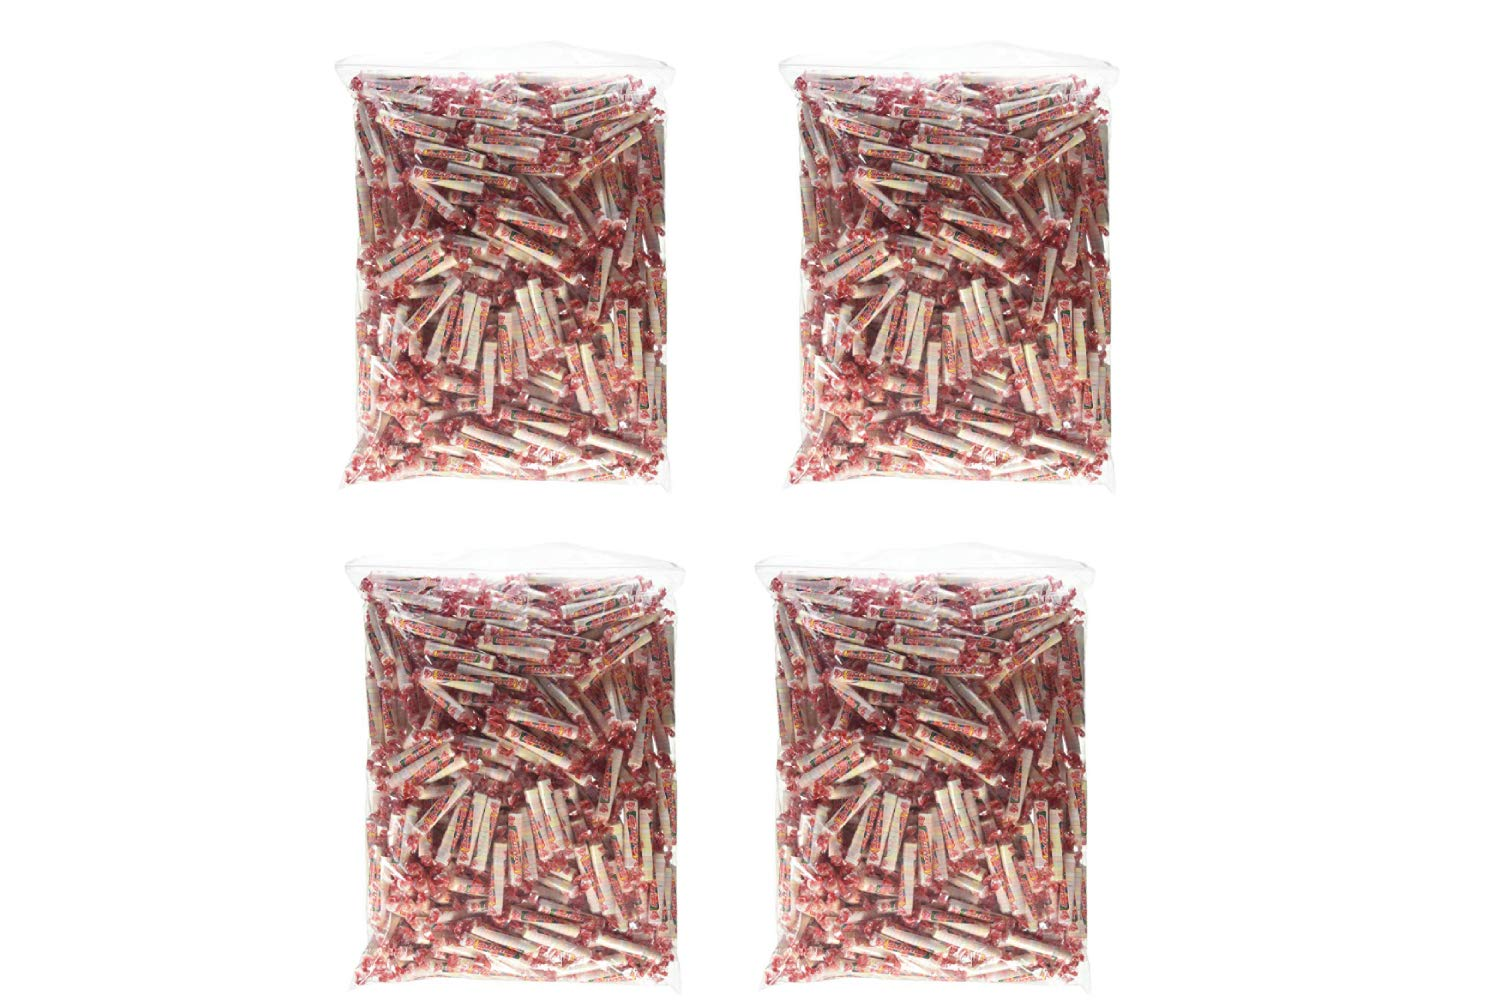 Cede Smarties Bulk 160 Ounces Case (4 Pack) by Smarties Candy (Image #1)